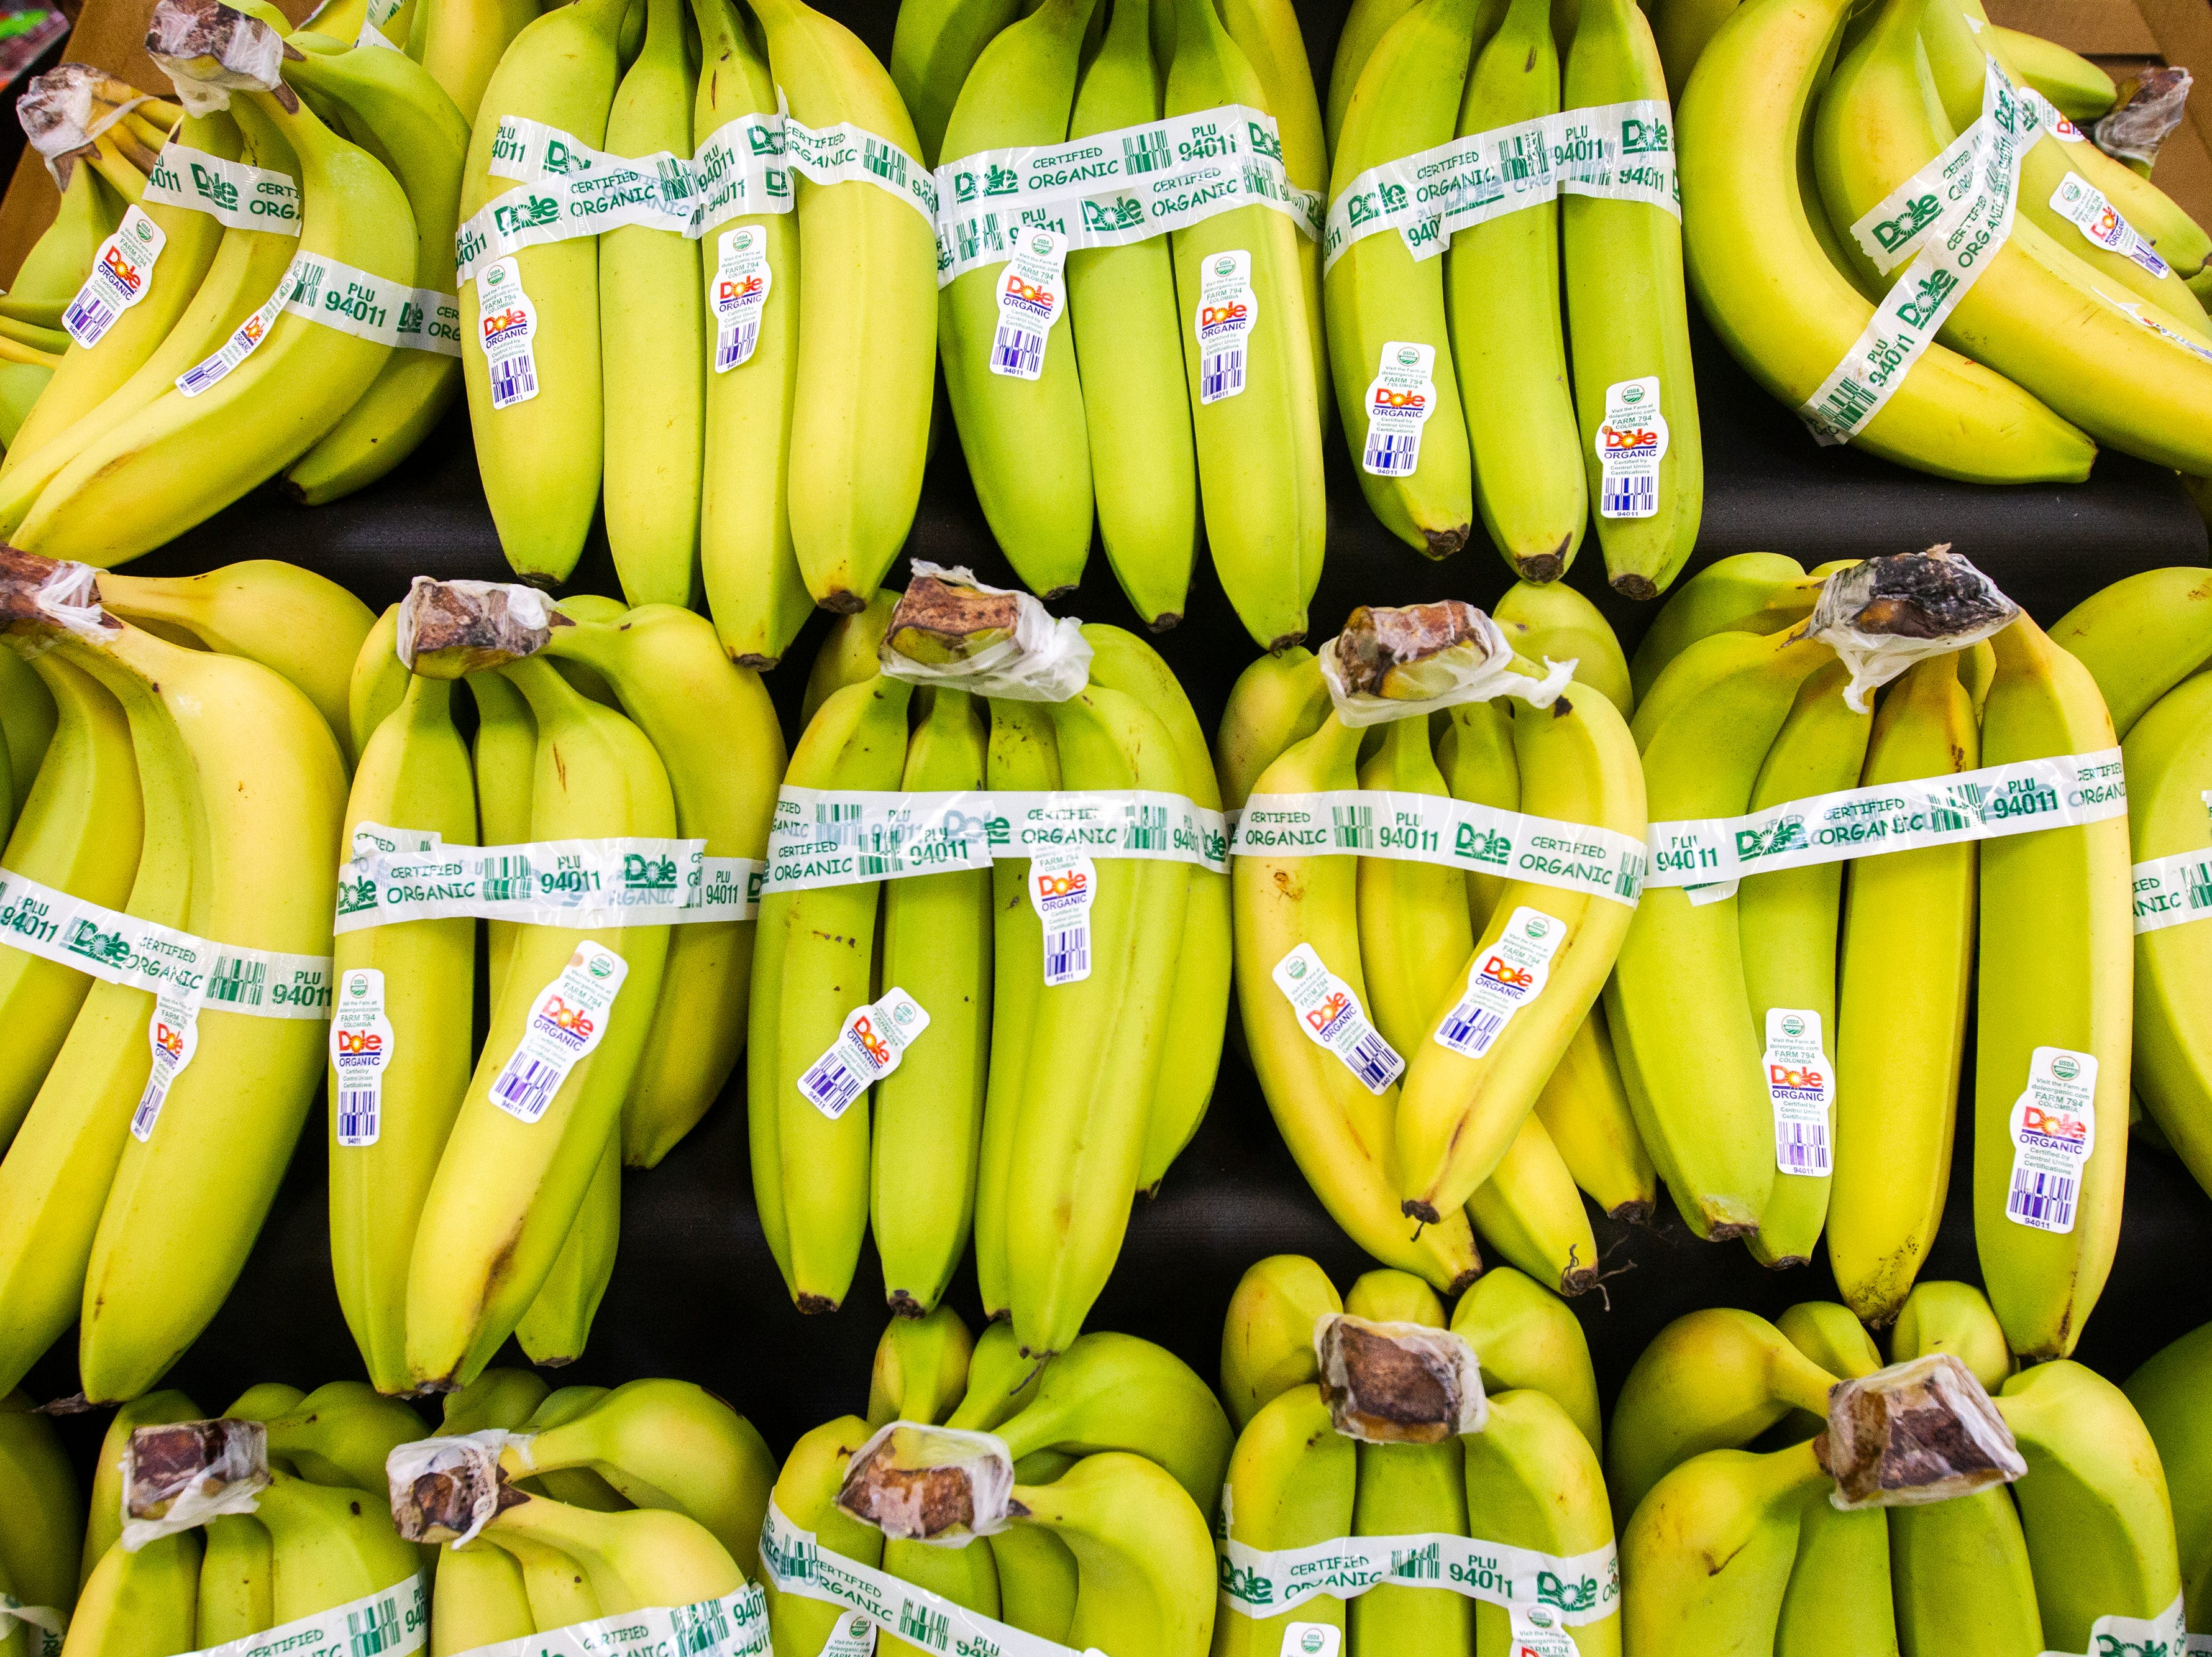 Organic bananas are displayed at a new Hy-Vee on Monday, Oct. 15, 2018, along Crosspark Road in Coralville, Iowa.